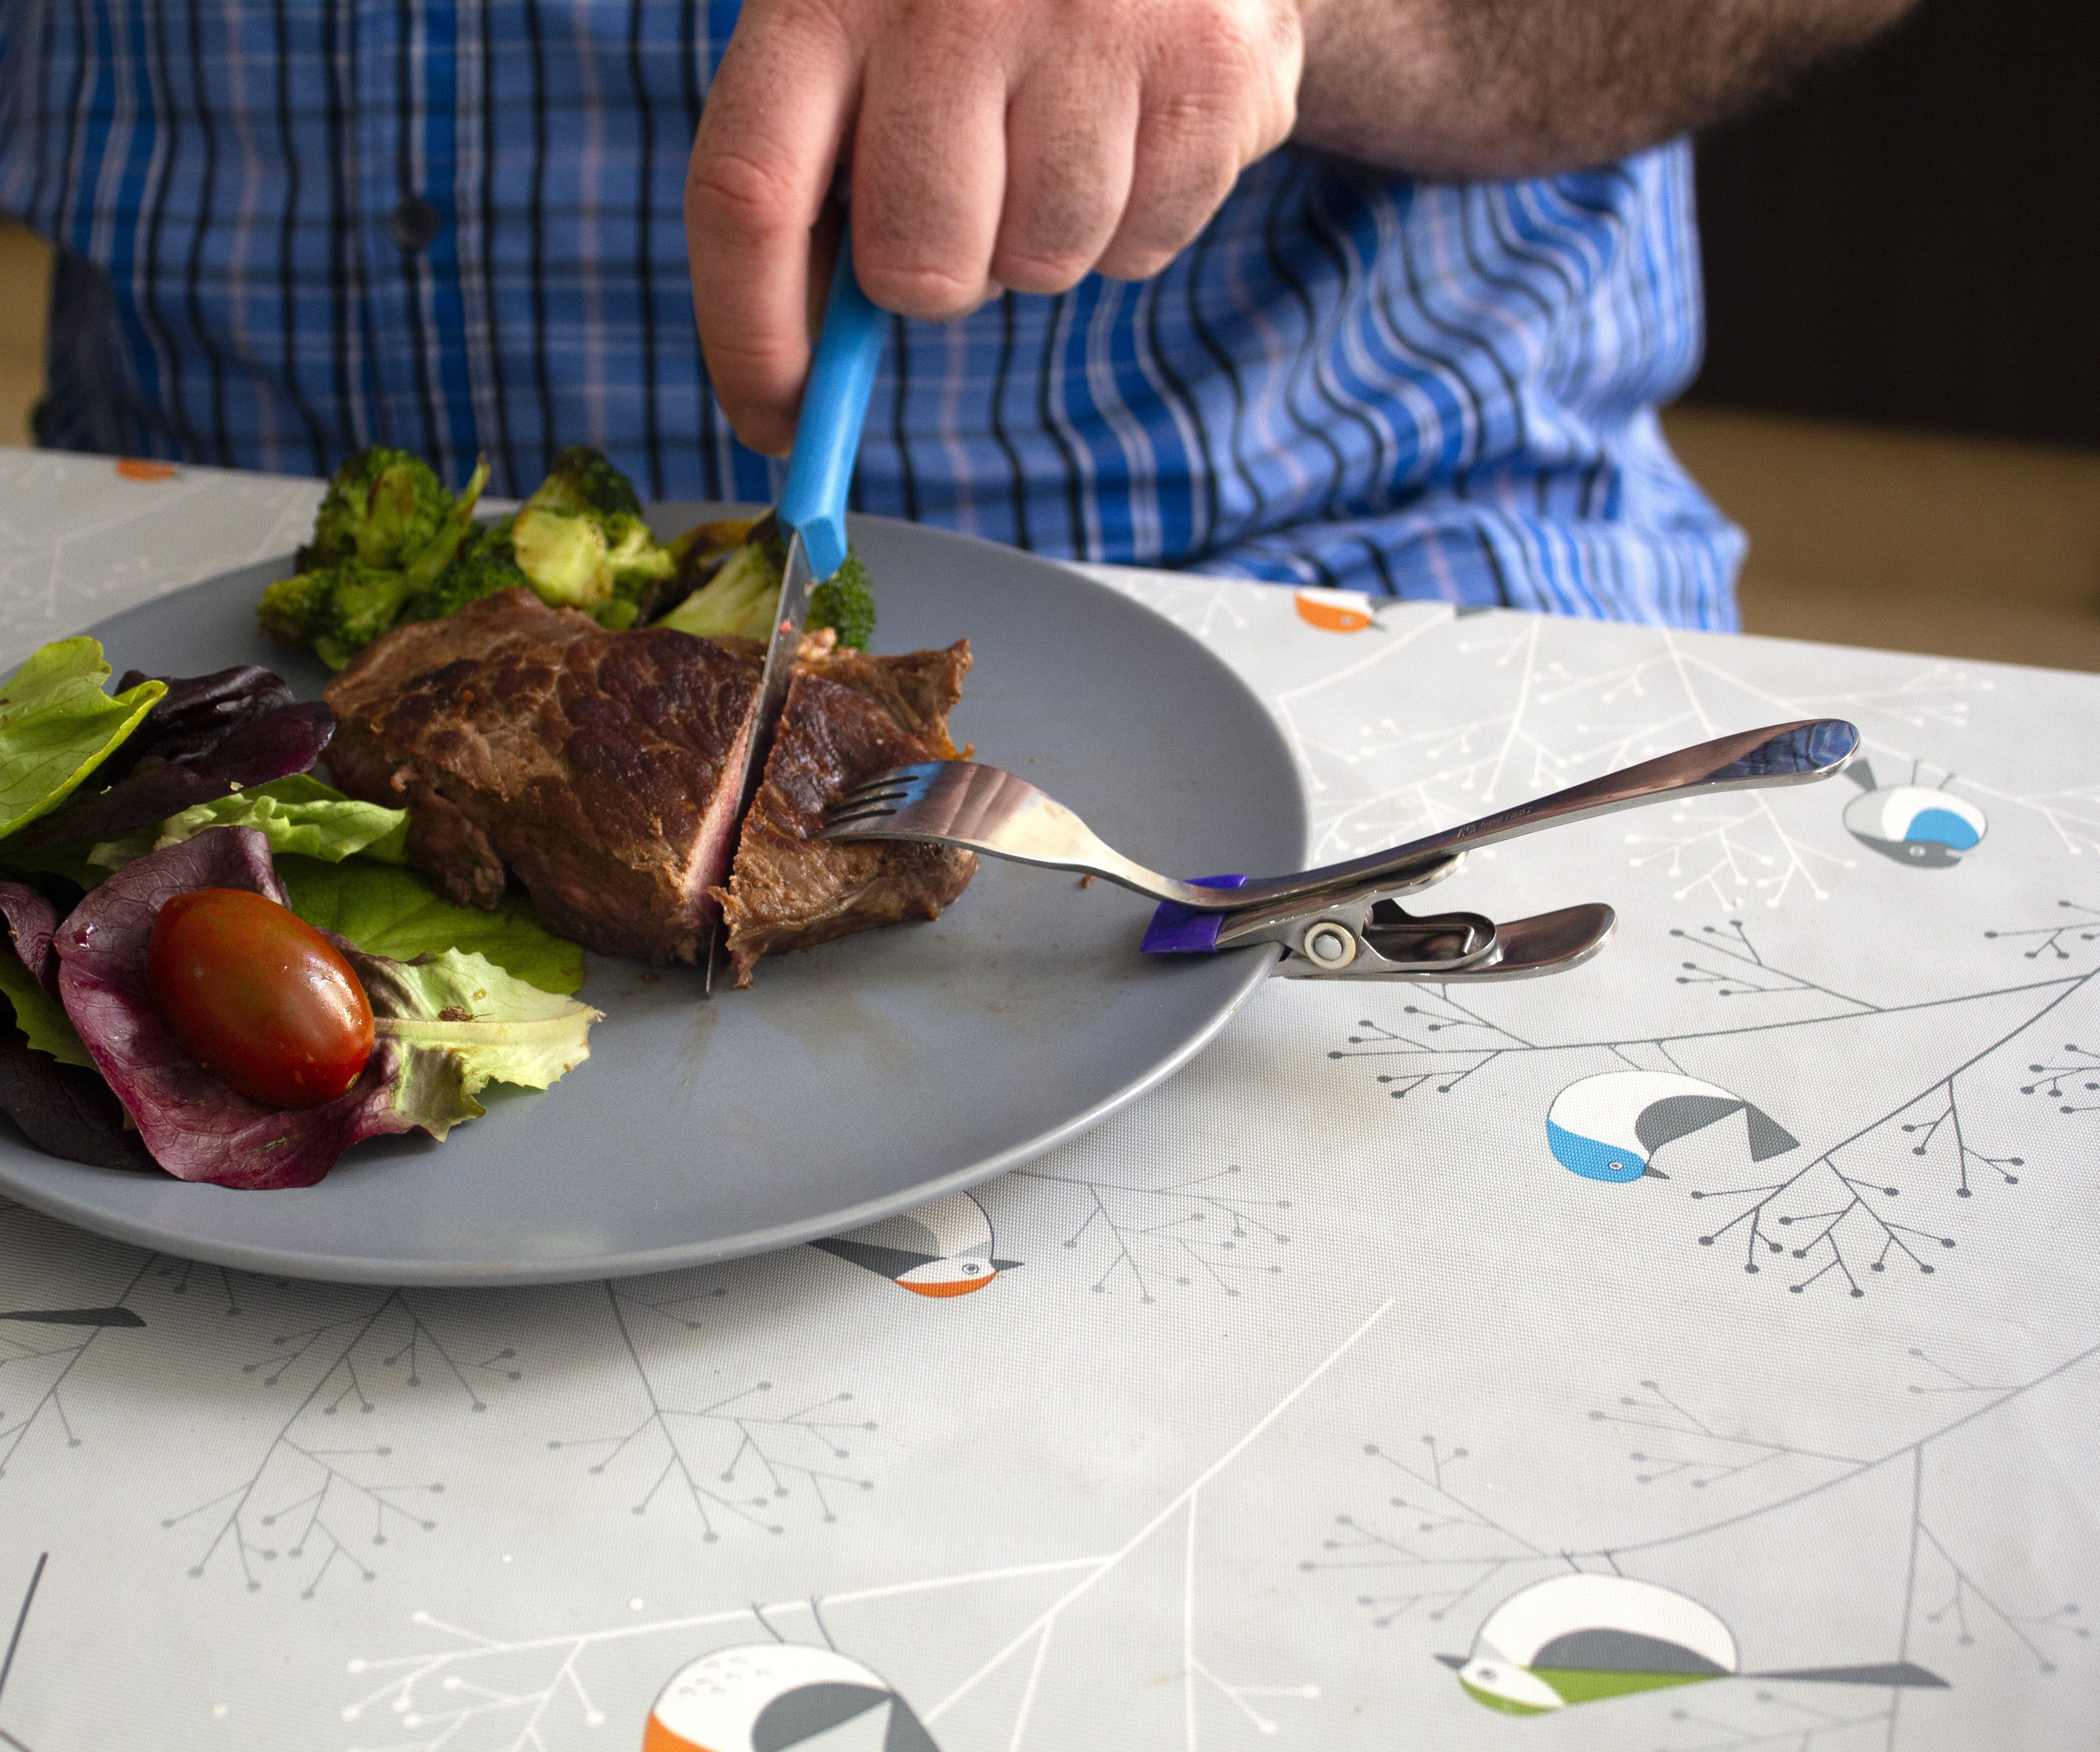 Fork for Cutting Food in One Hand